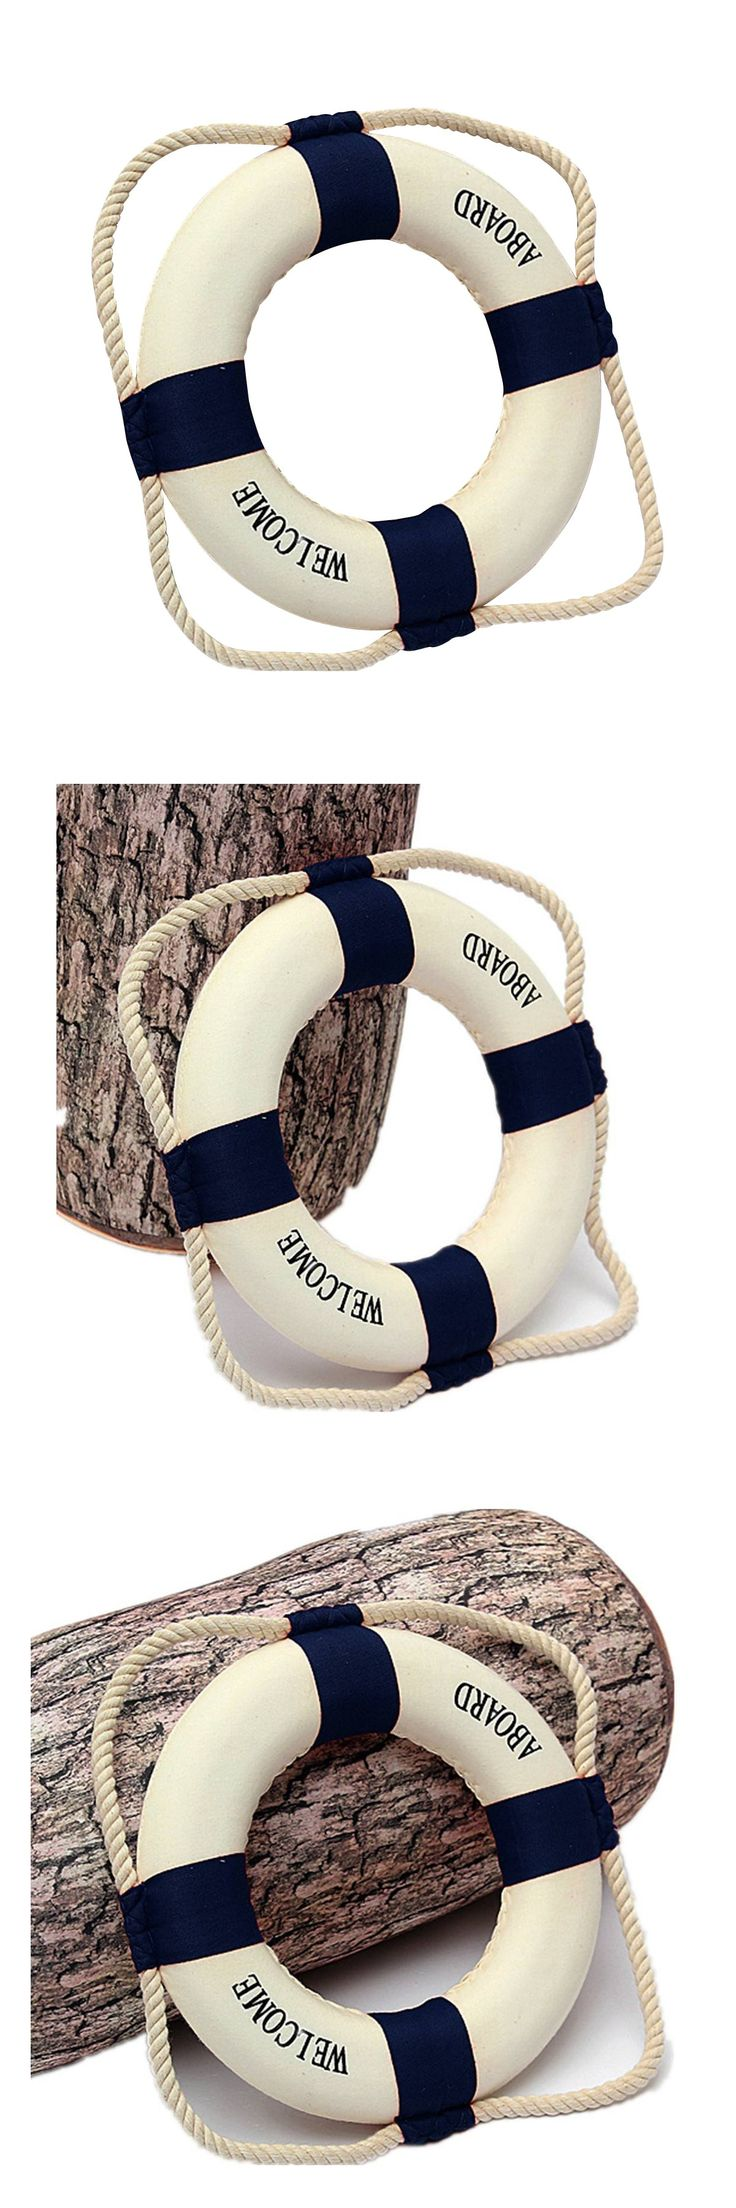 Welcome aboard boat ships life ring clock - Welcome Aboard Foam Nautical Life Lifebuoy Ring Boat Wall Hanging Home Decoration Blue 14cm